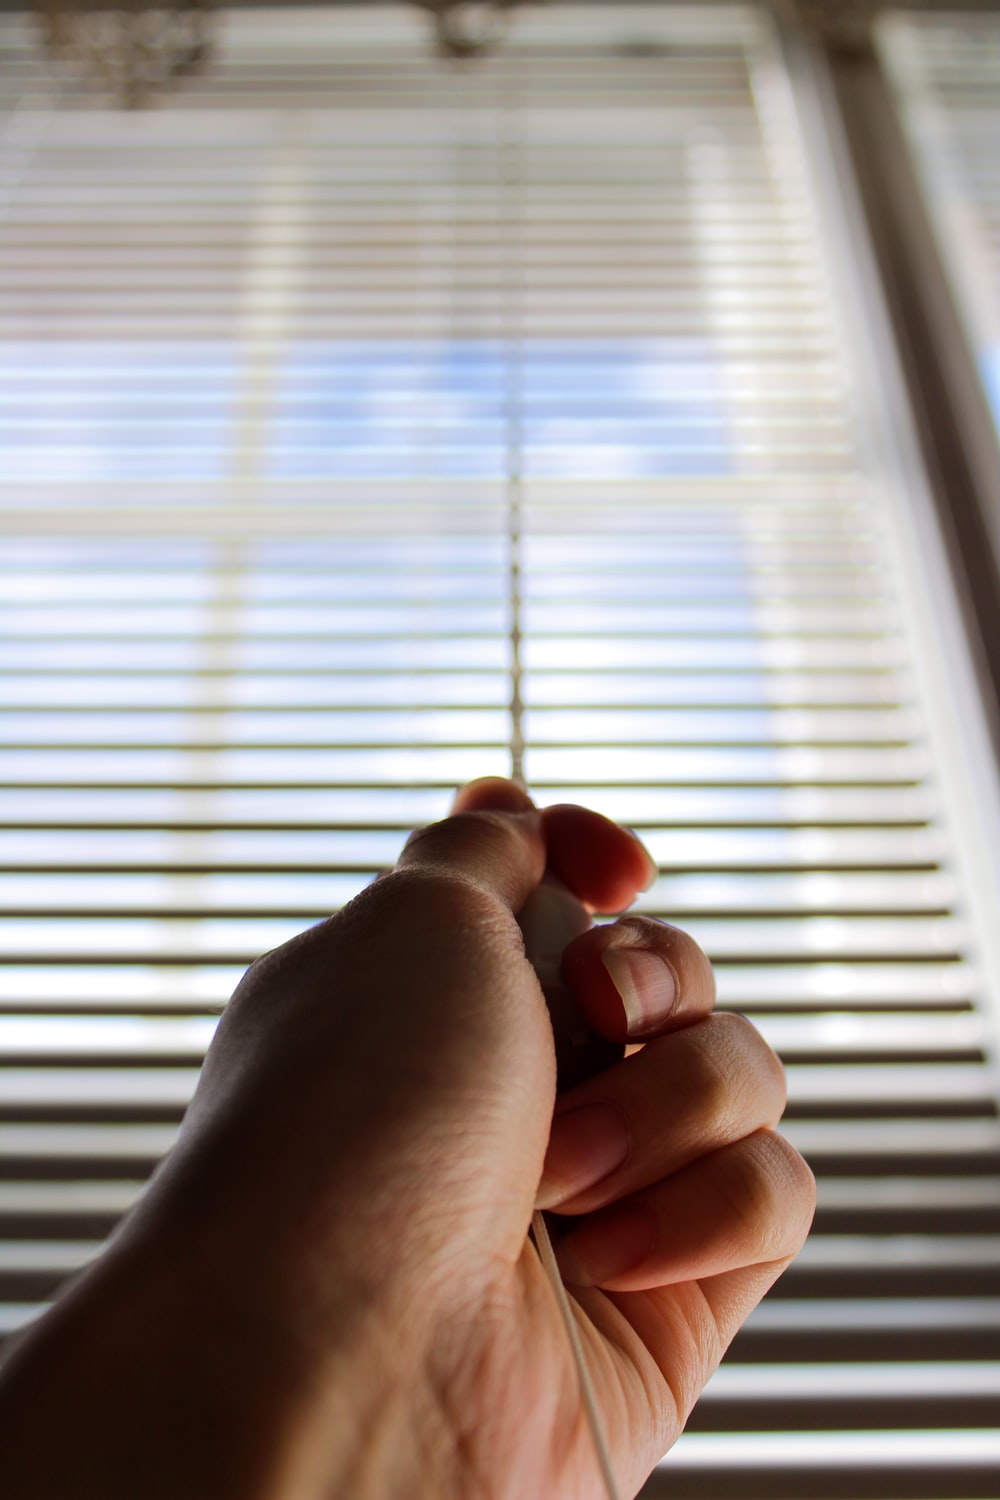 persons left hand near window blinds